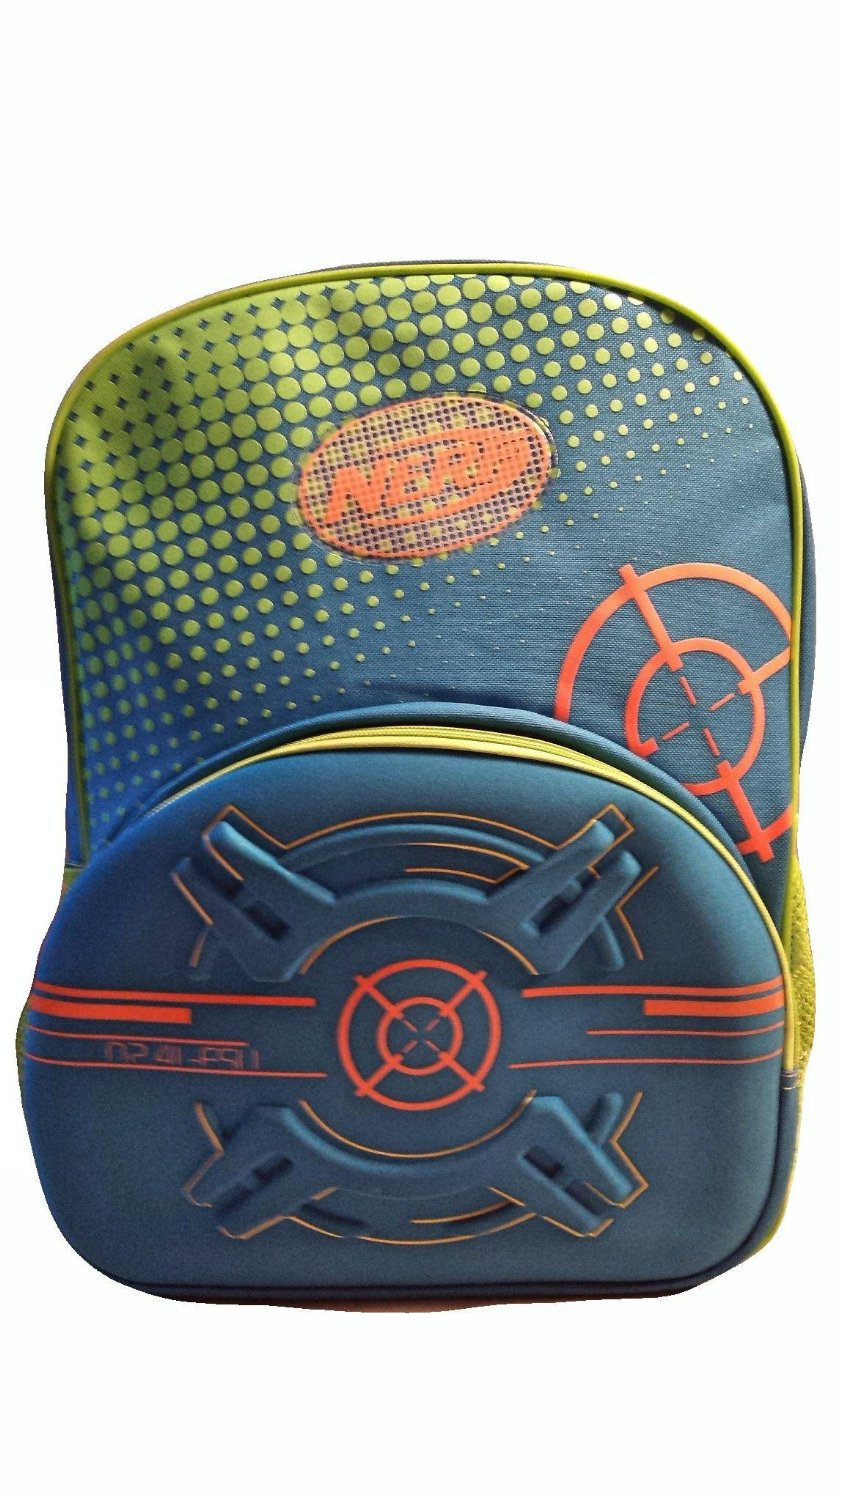 Nerf Target Practice Blue & Orange Deluxe Backpack